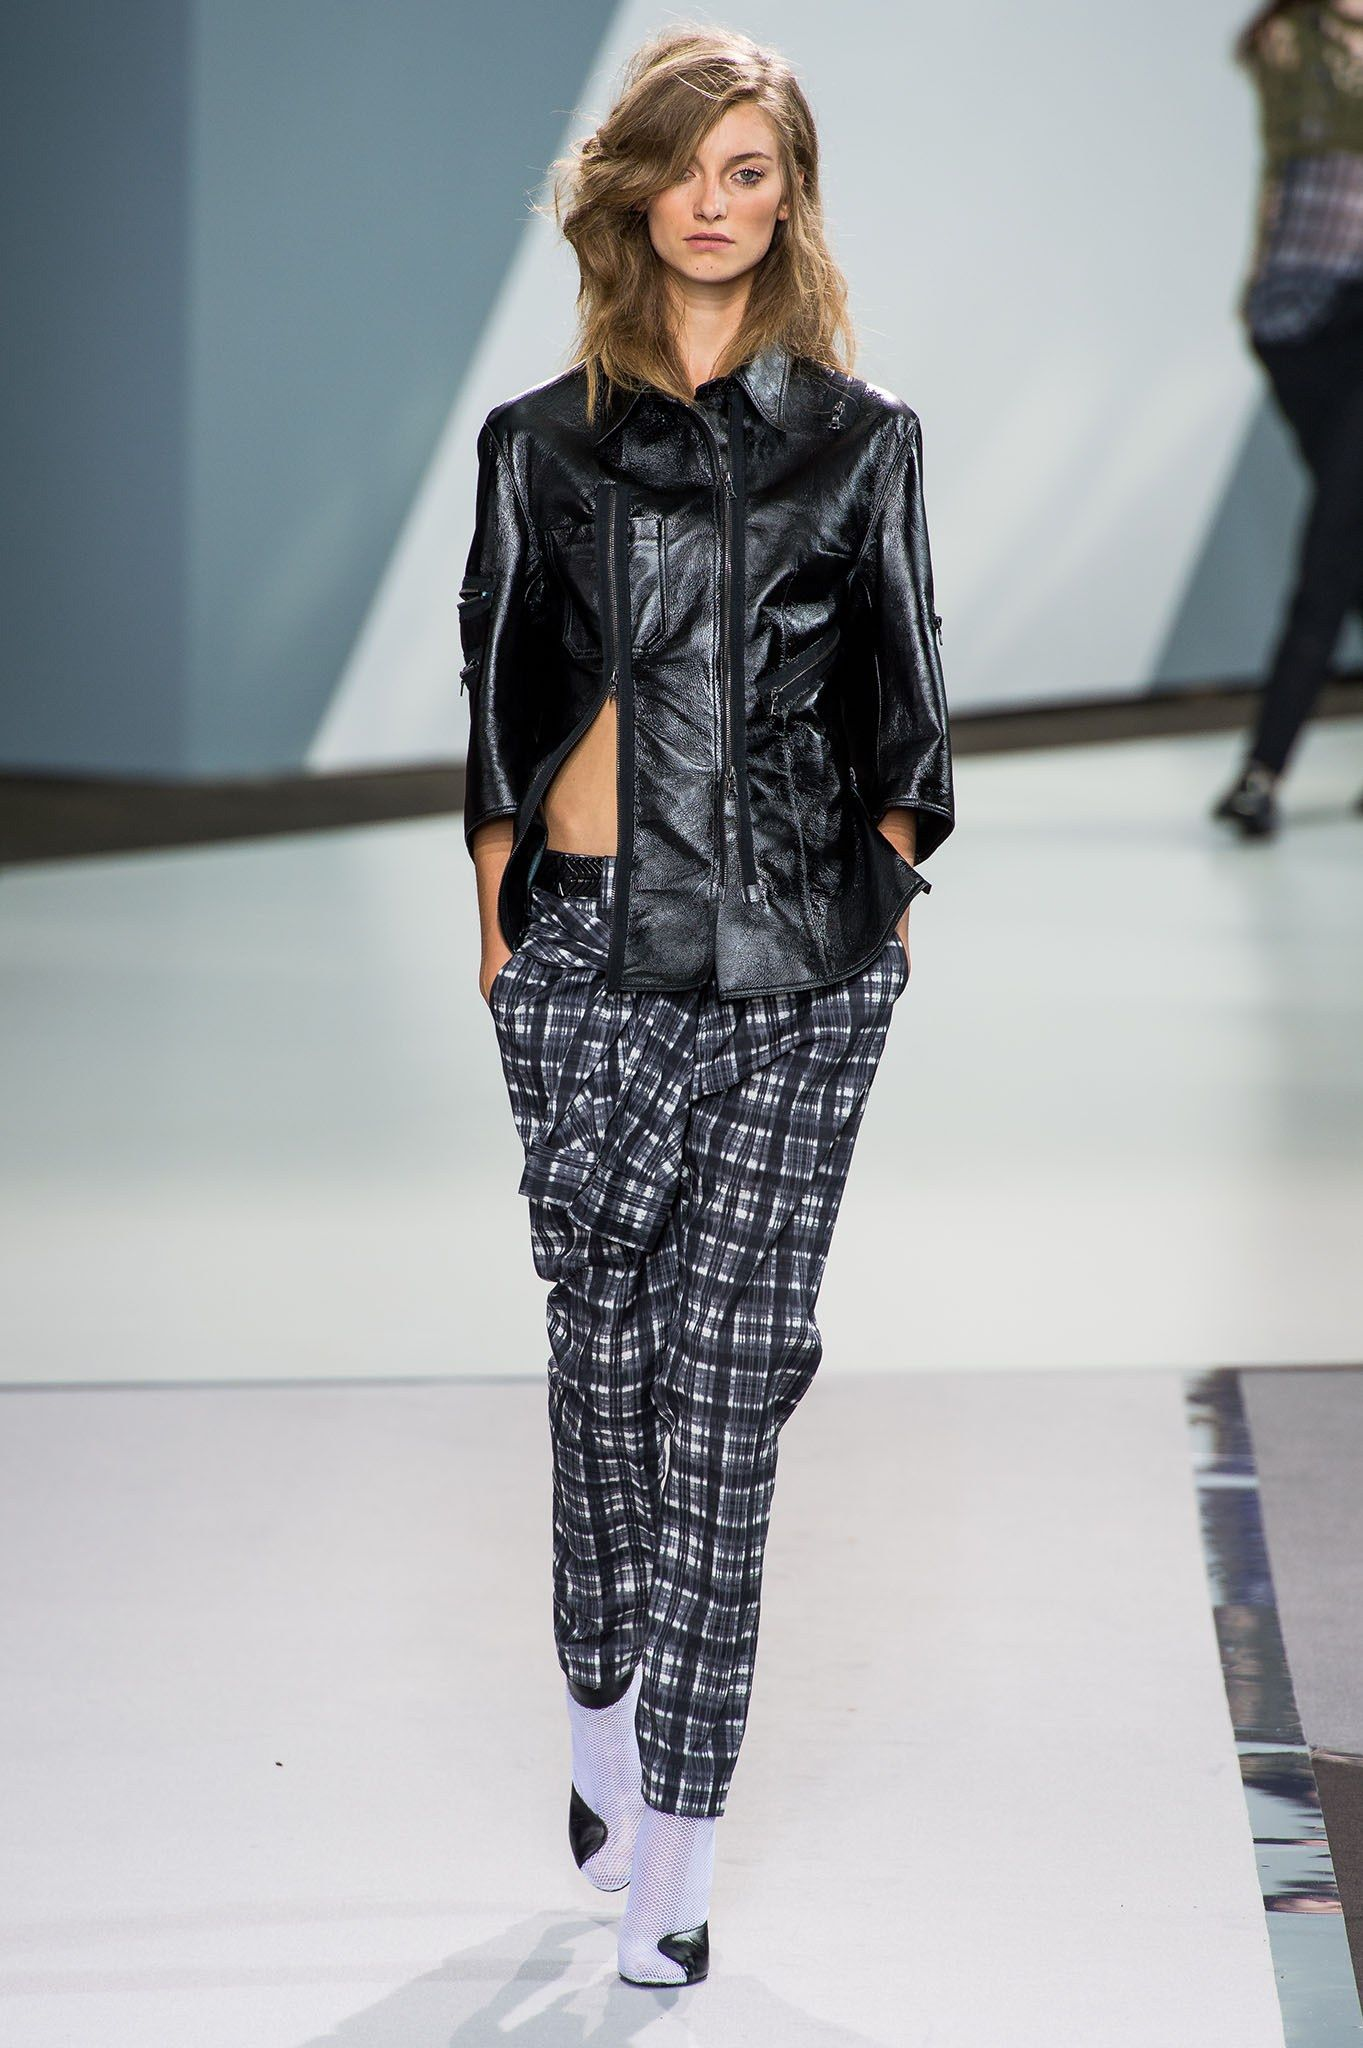 2179160056 3.1 Phillip Lim Spring 2013 Ready-to-Wear Fashion Show - Iris van Berne